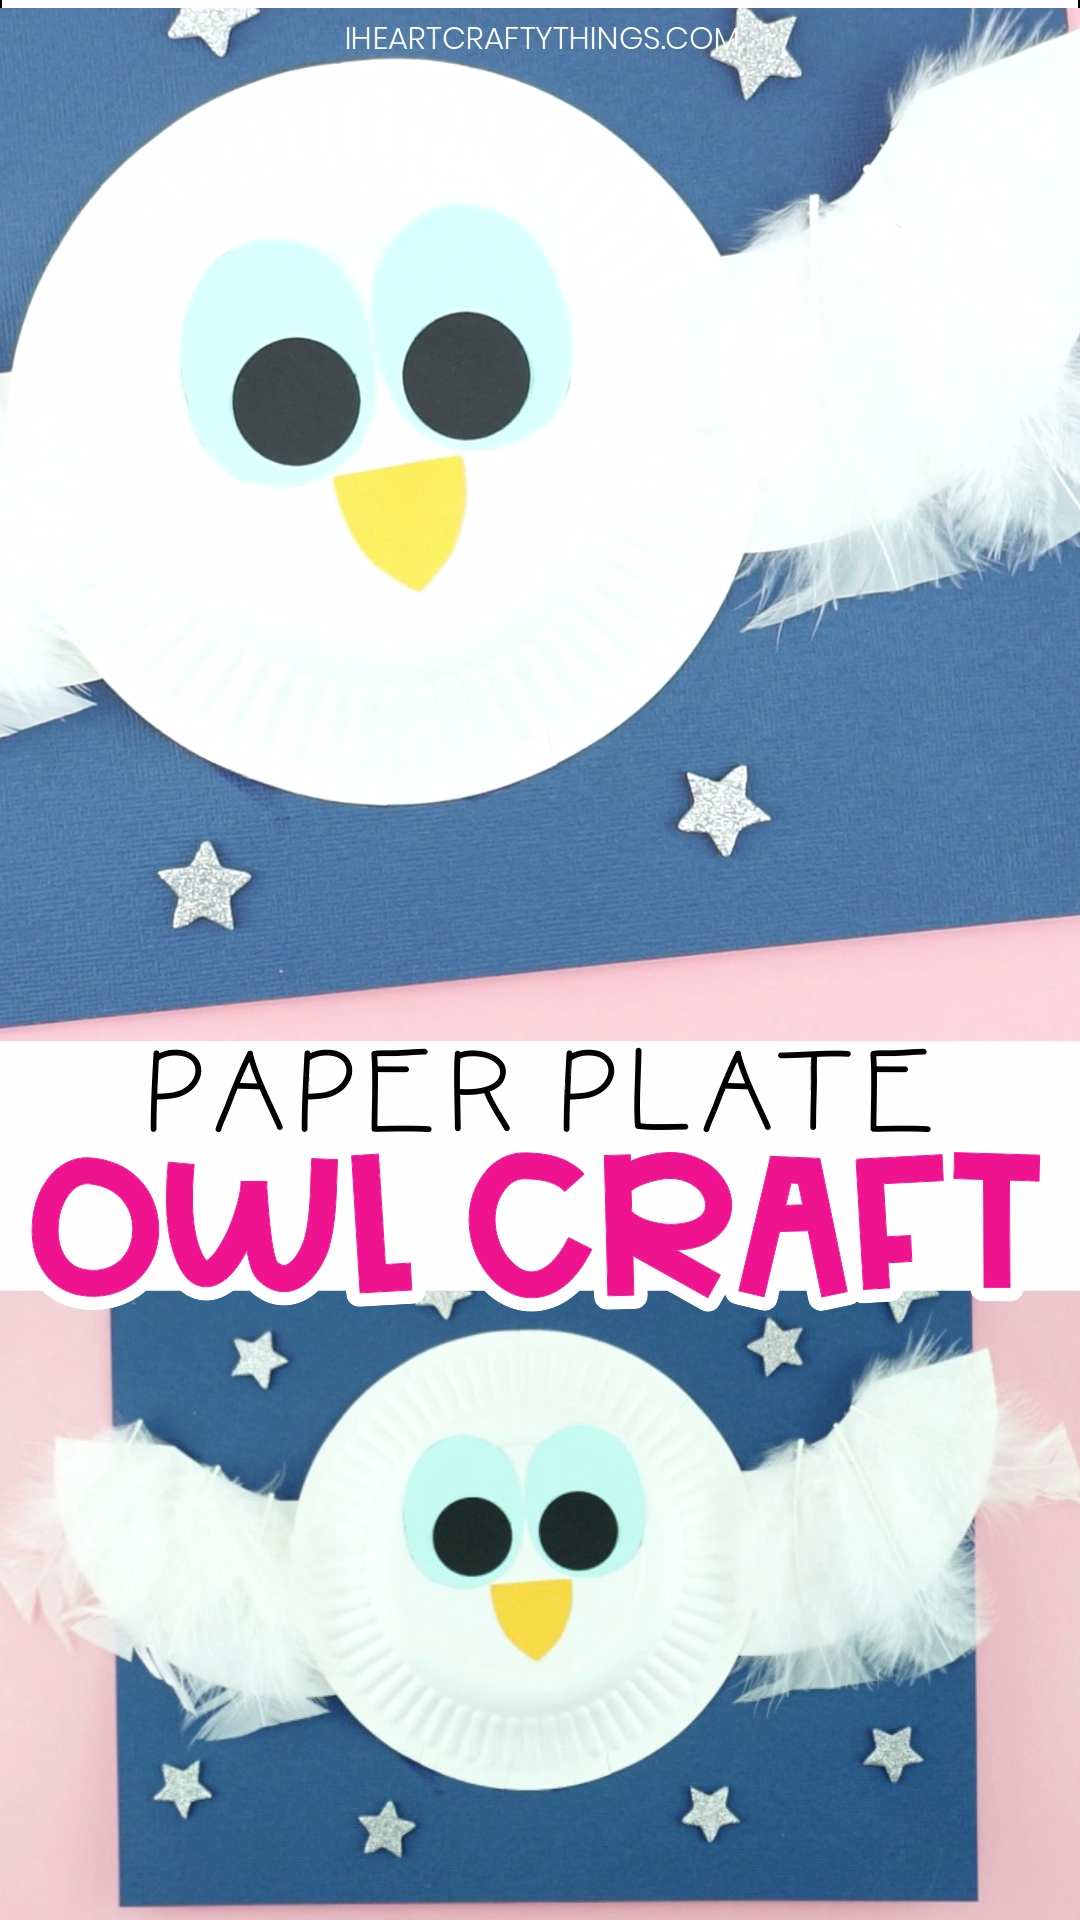 Paper Plate Frog Craft Paper Plate Frog Craft Craft Video art and craft videos